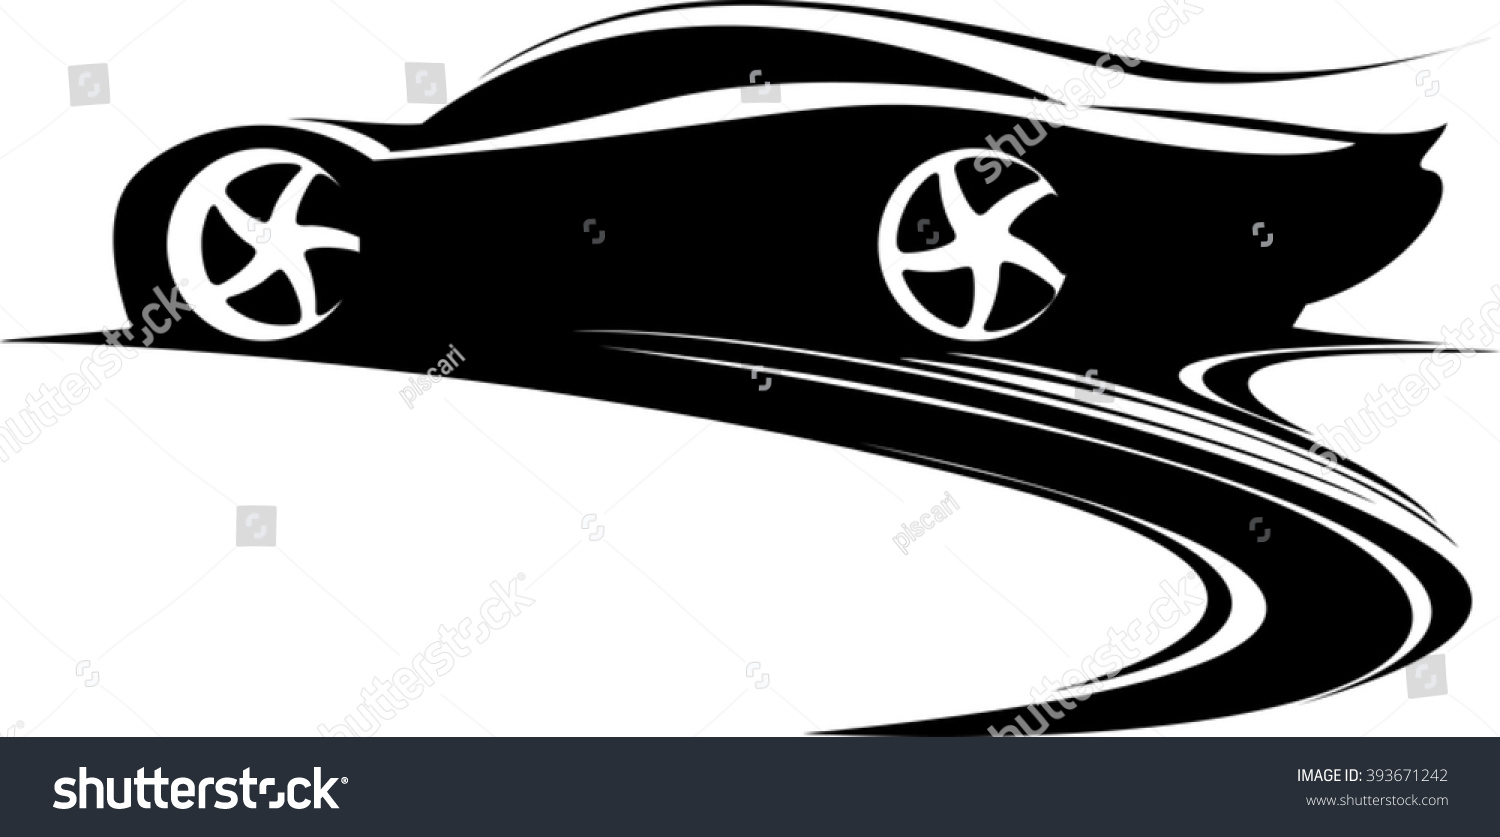 Sport car label design fast car emblem black and white car silhouette vector